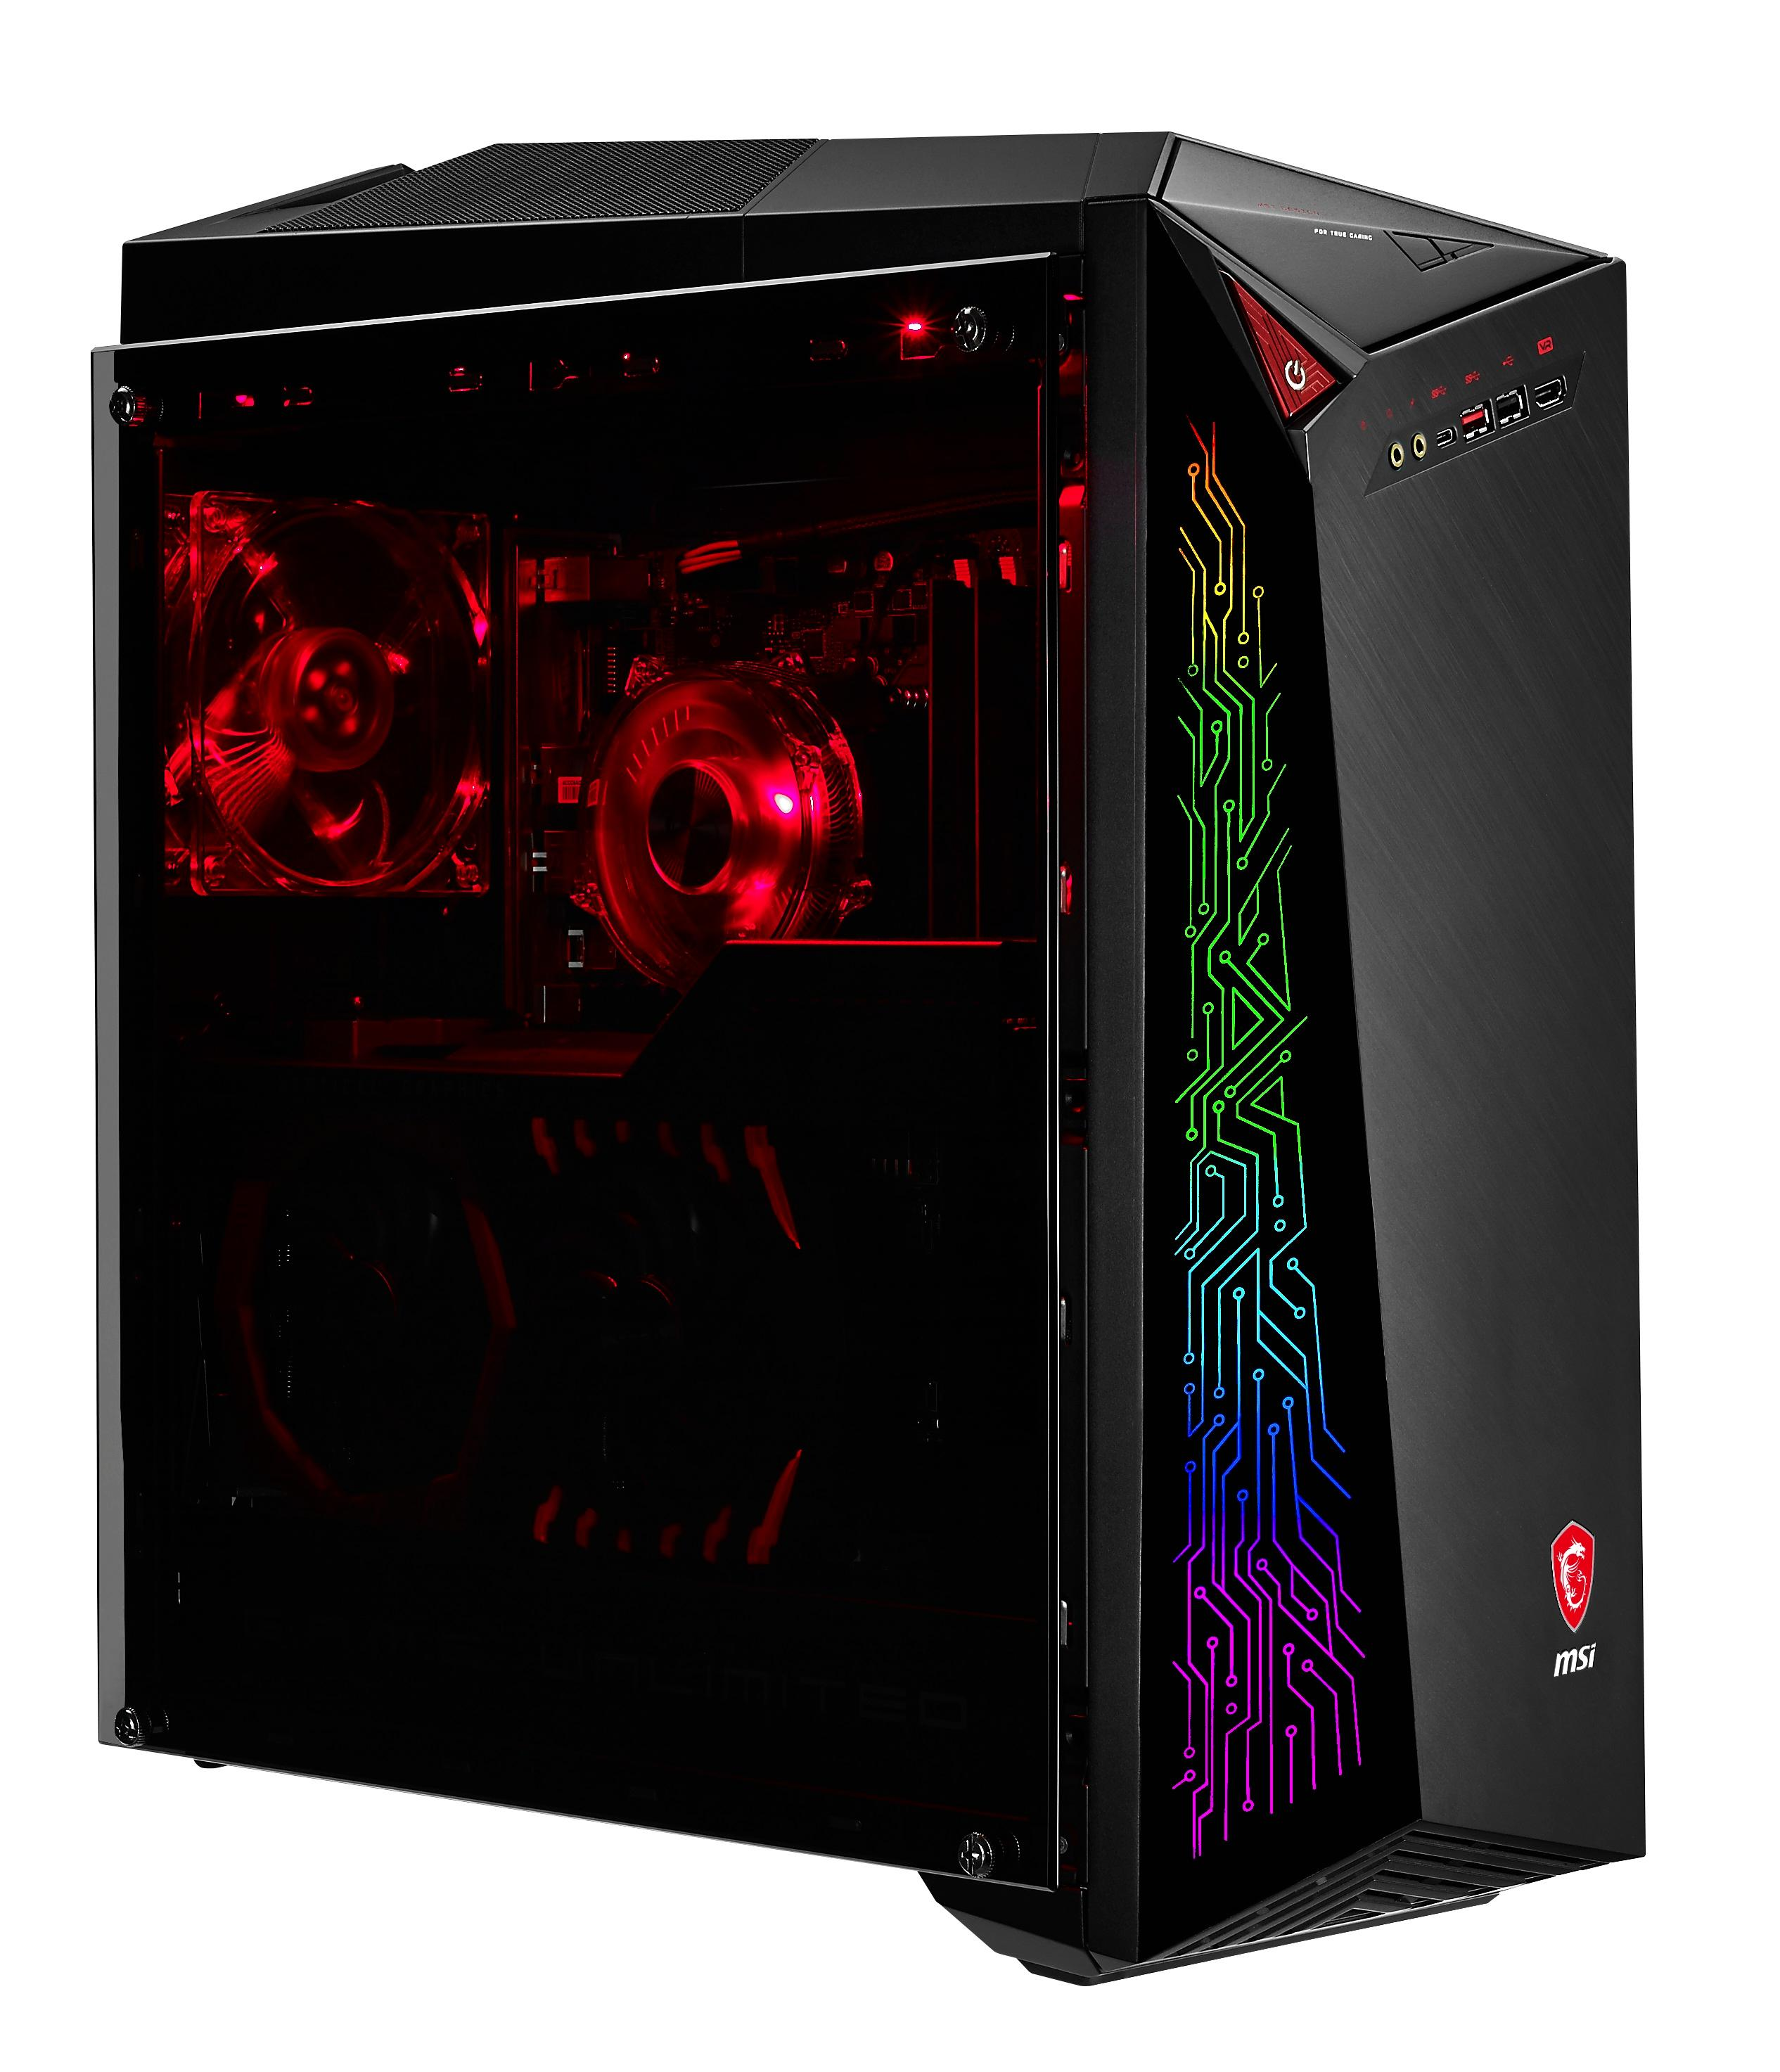 msi infinite a vr7re 020us vr ready gaming desktop i7 7700 gtx 1080 16gb 256gb ssd 2tb hdd. Black Bedroom Furniture Sets. Home Design Ideas